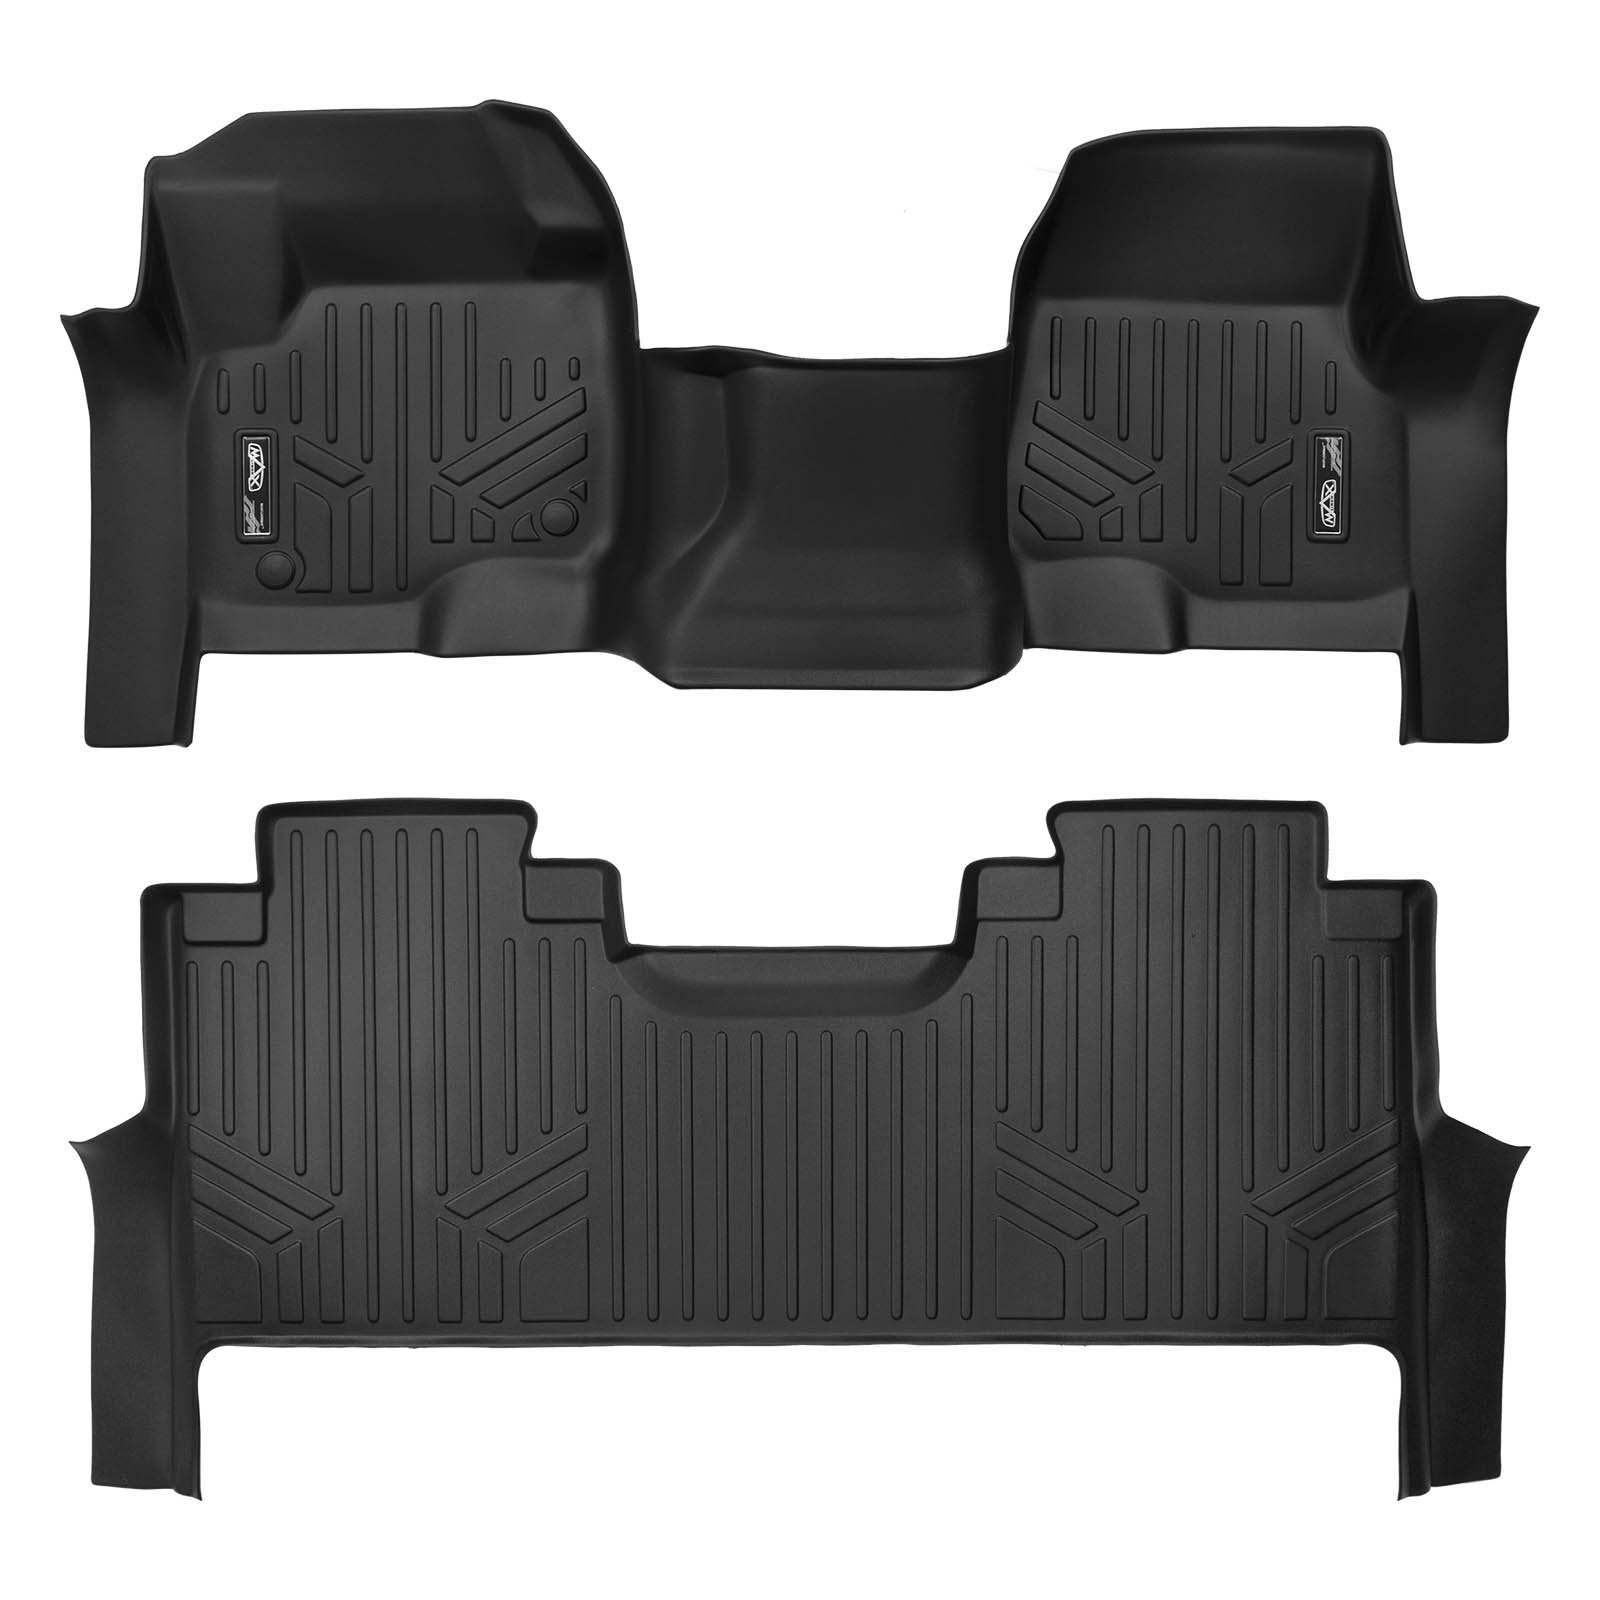 MAX LINER A0298/B0298 Custom Floor Mats 2 Liner Set Black for 2017-2019 Ford F-250/F-350 Super Duty Crew Cab with 1st Row Bench Seat by MAX LINER (Image #1)